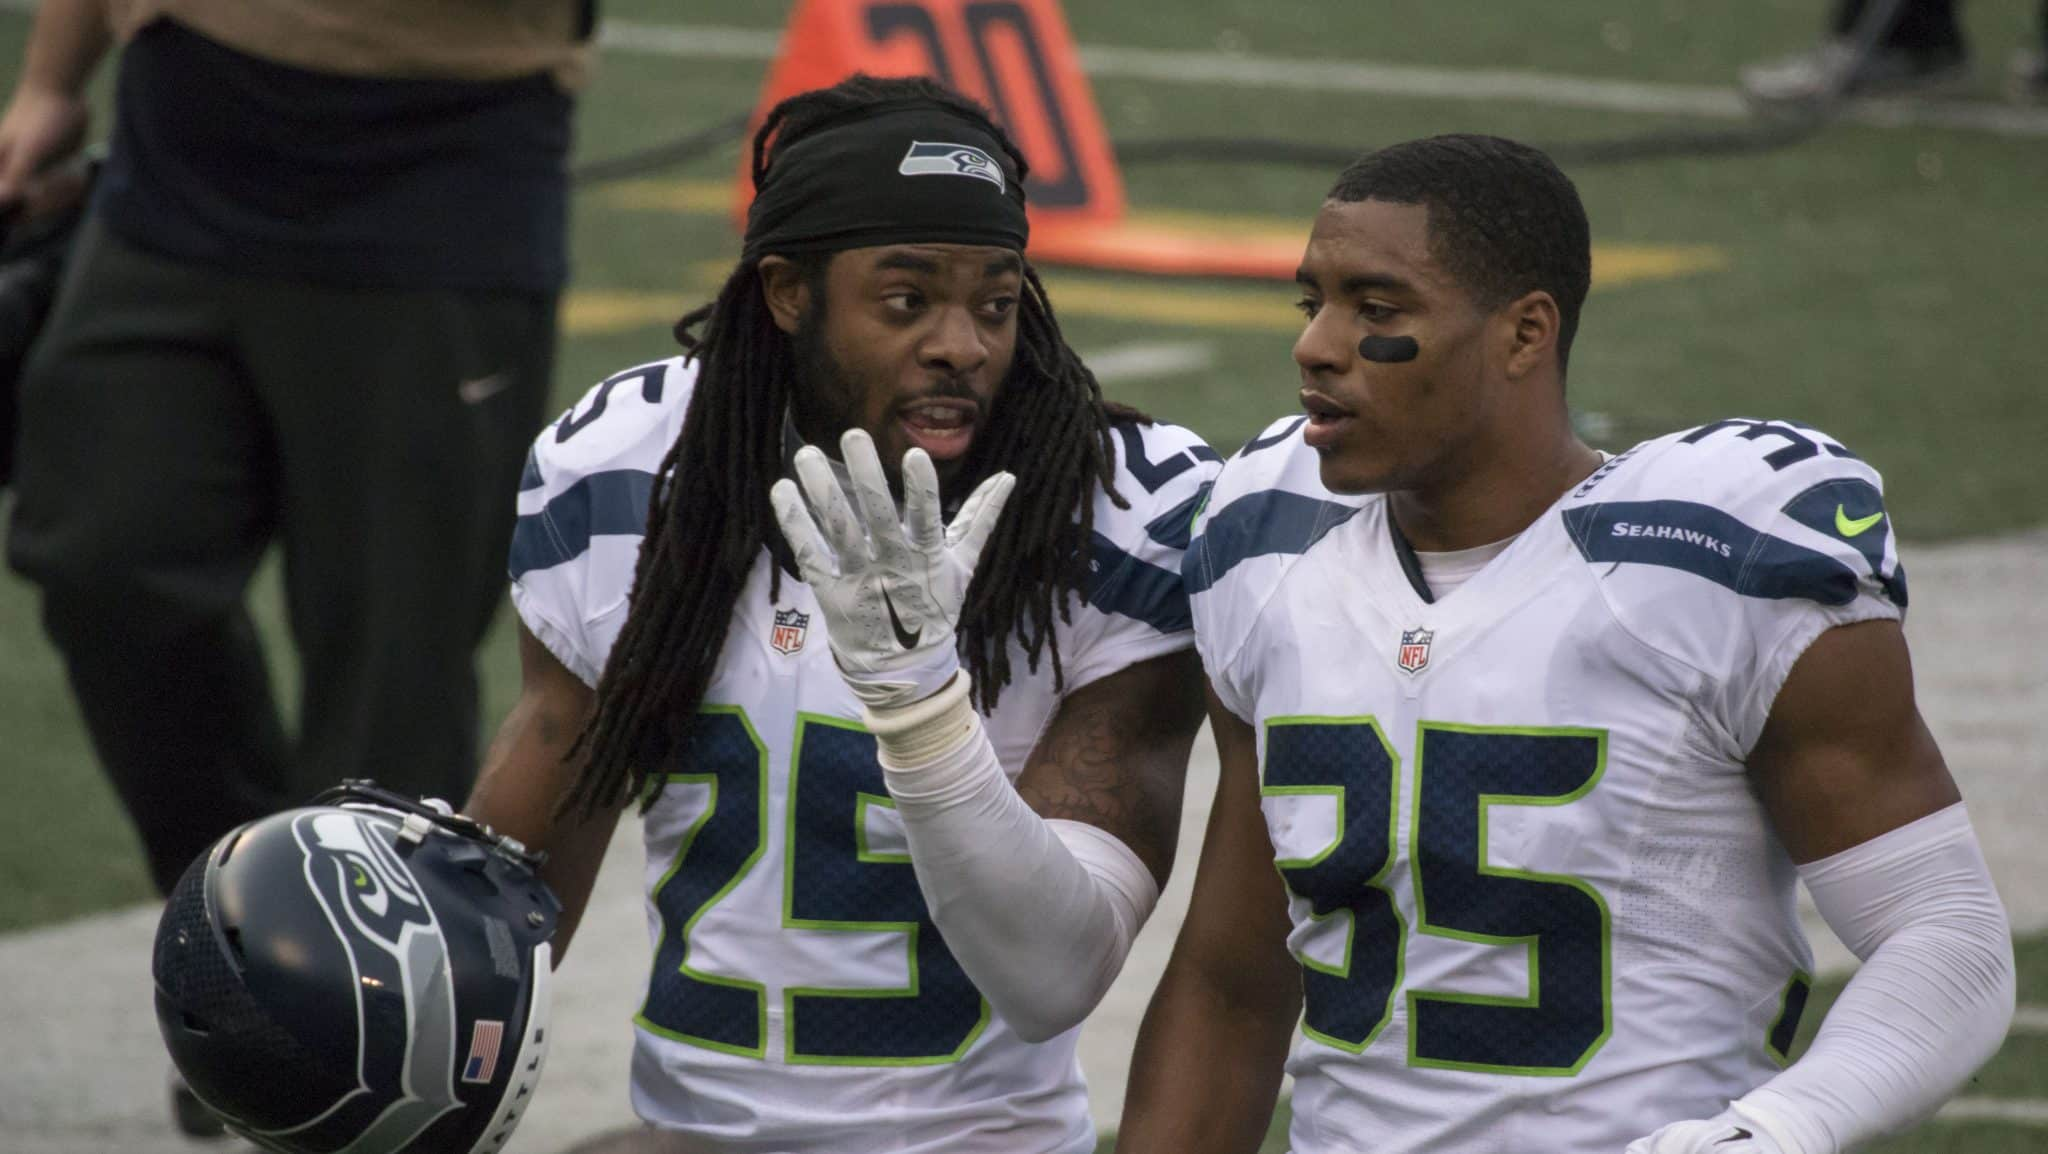 49ers At Seahawks: Key Matchups